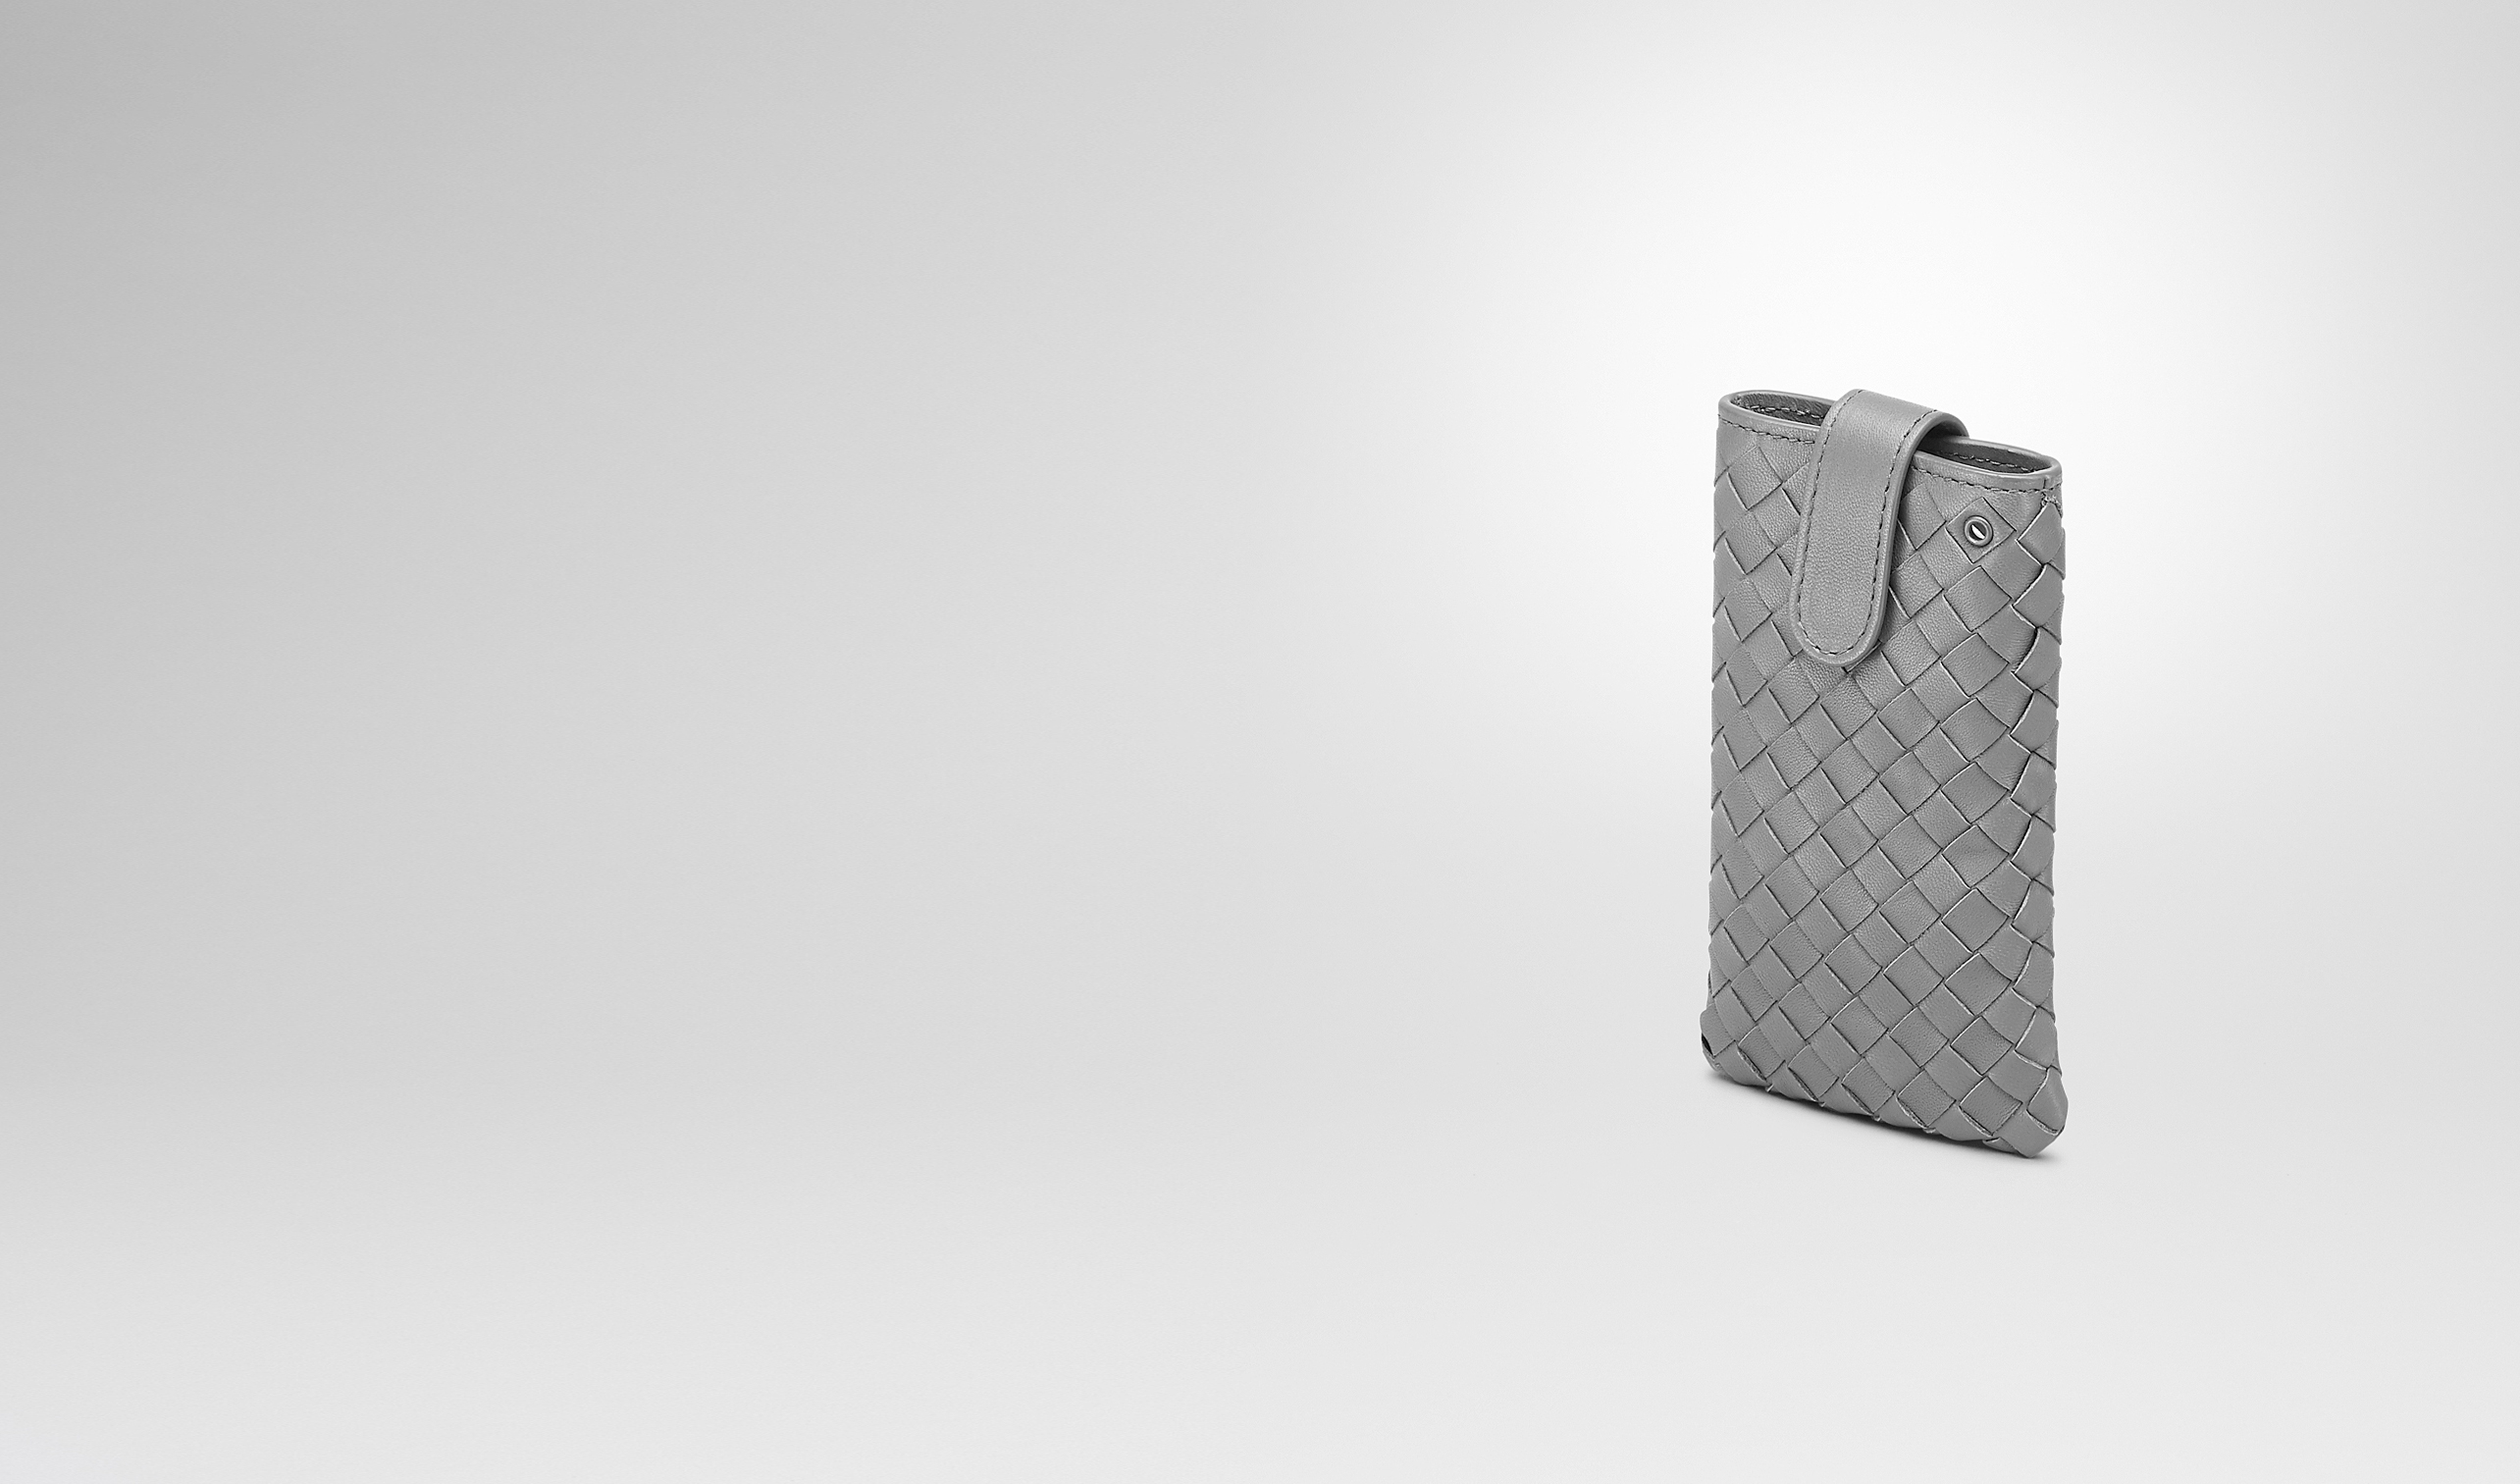 BOTTEGA VENETA Other Leather Accessory E IPHONE CASE IN NEW LIGHT GREY INTRECCIATO NAPPA pl